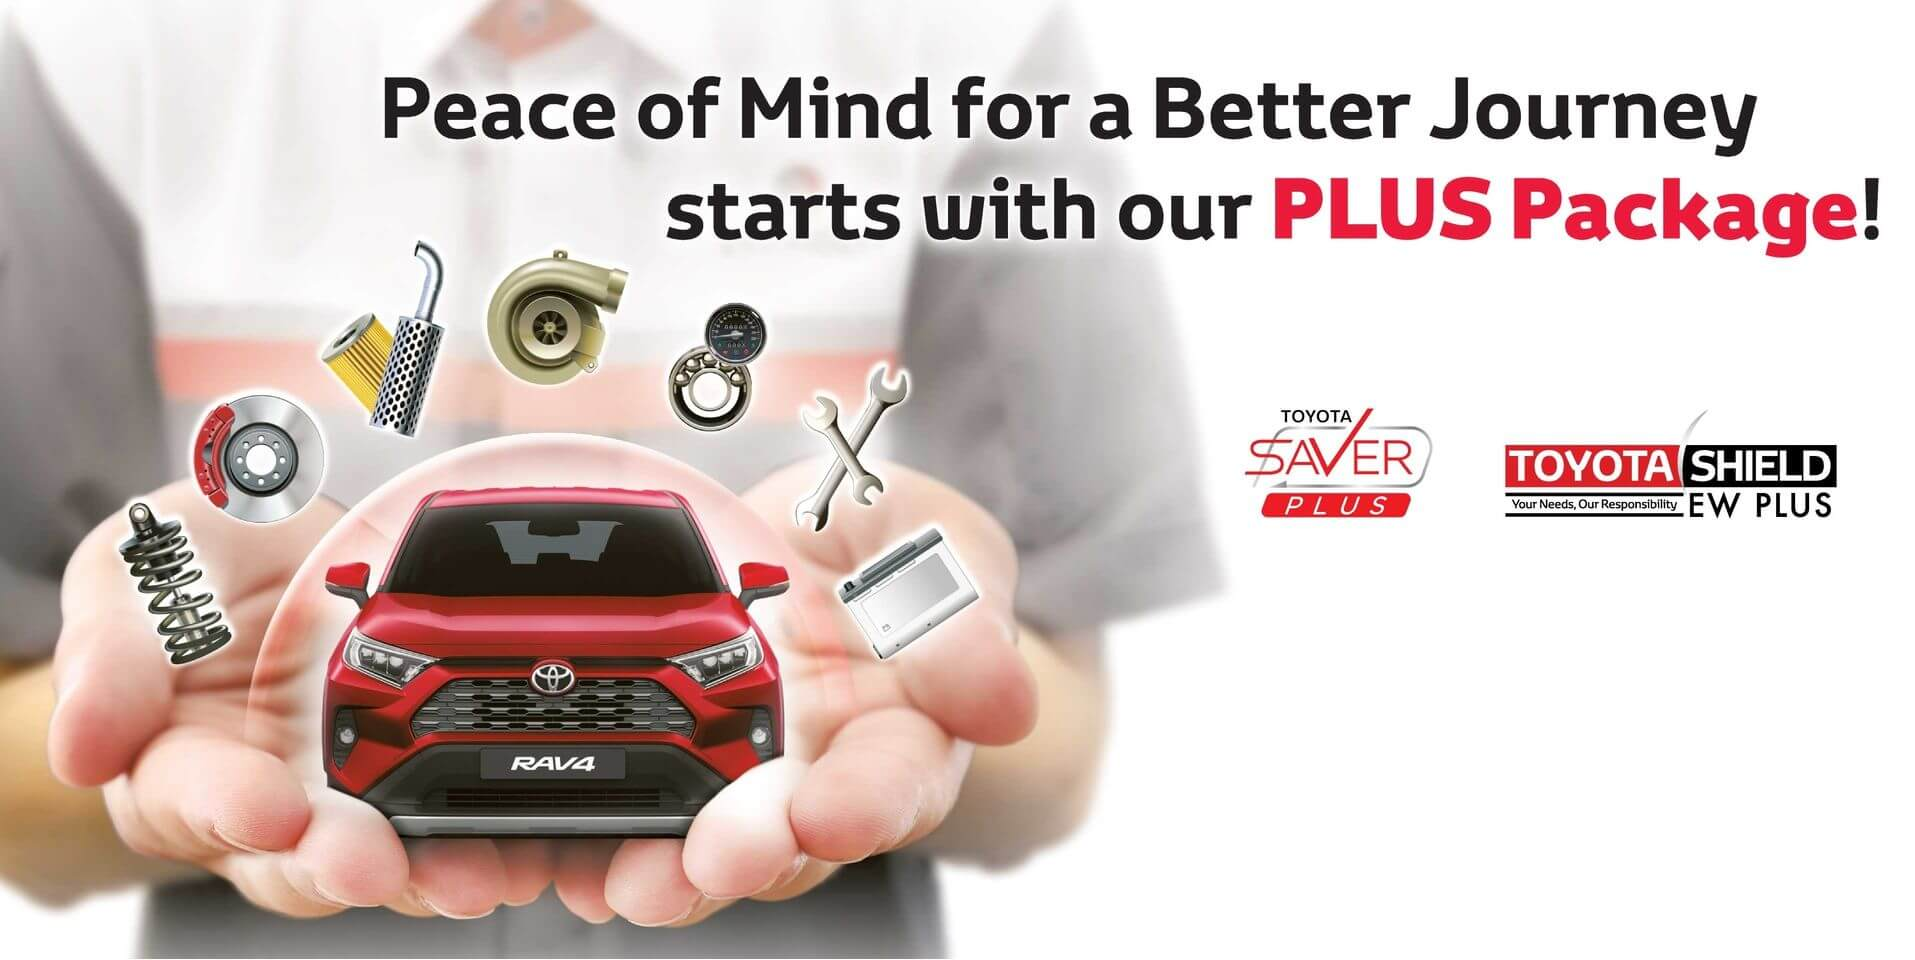 Toyota Singapore | Trusted Choice for Your New Vehicle